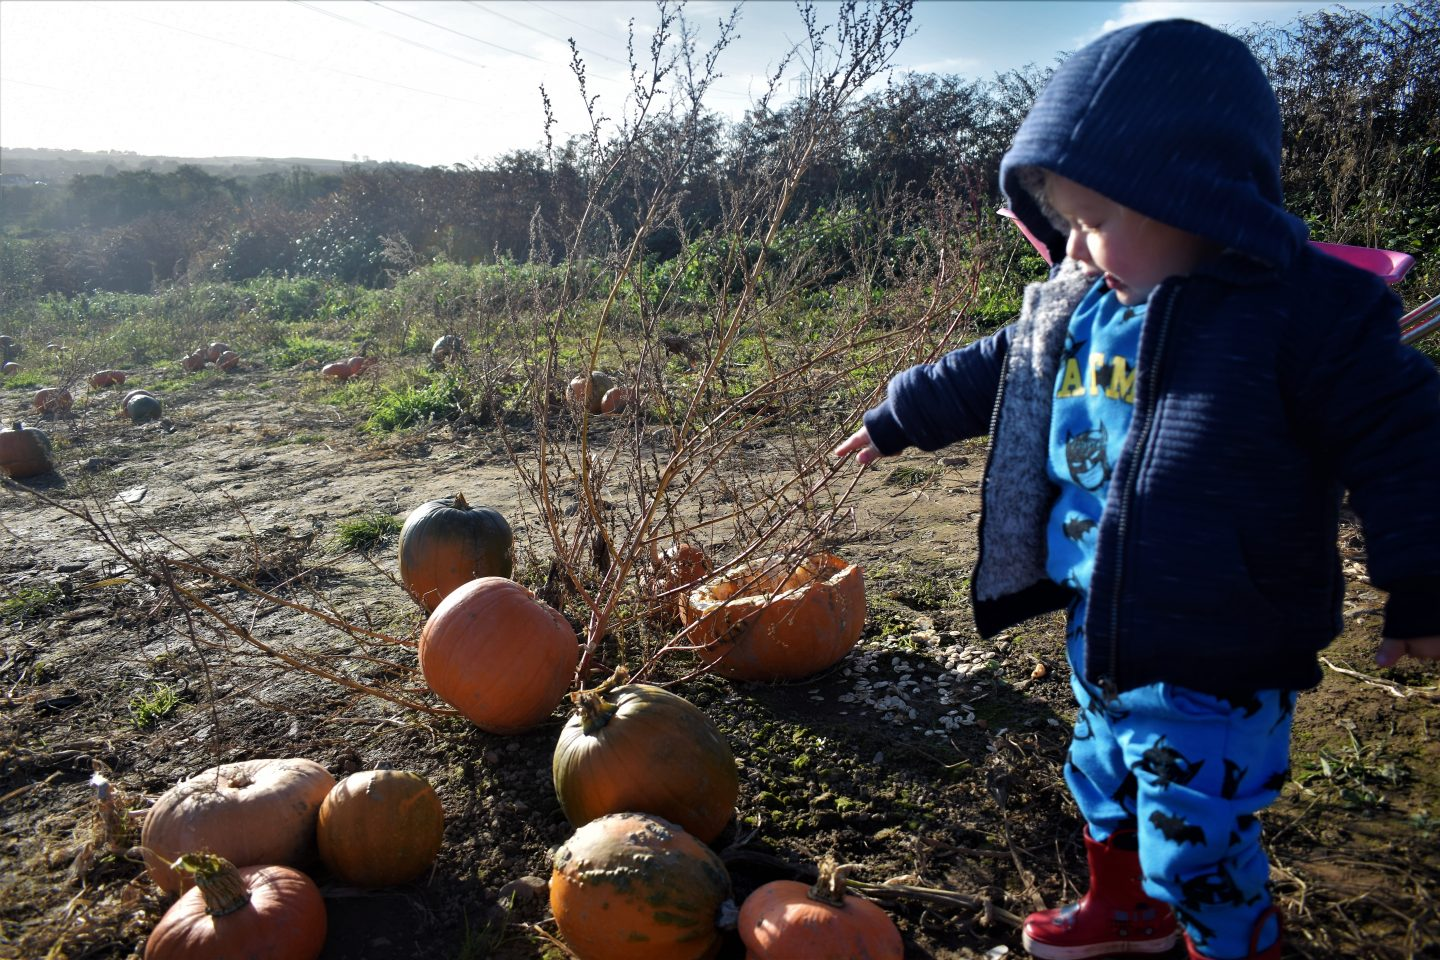 Pumpkin picking in Swansea – Penyfodau Fawr Farm pick your own fields